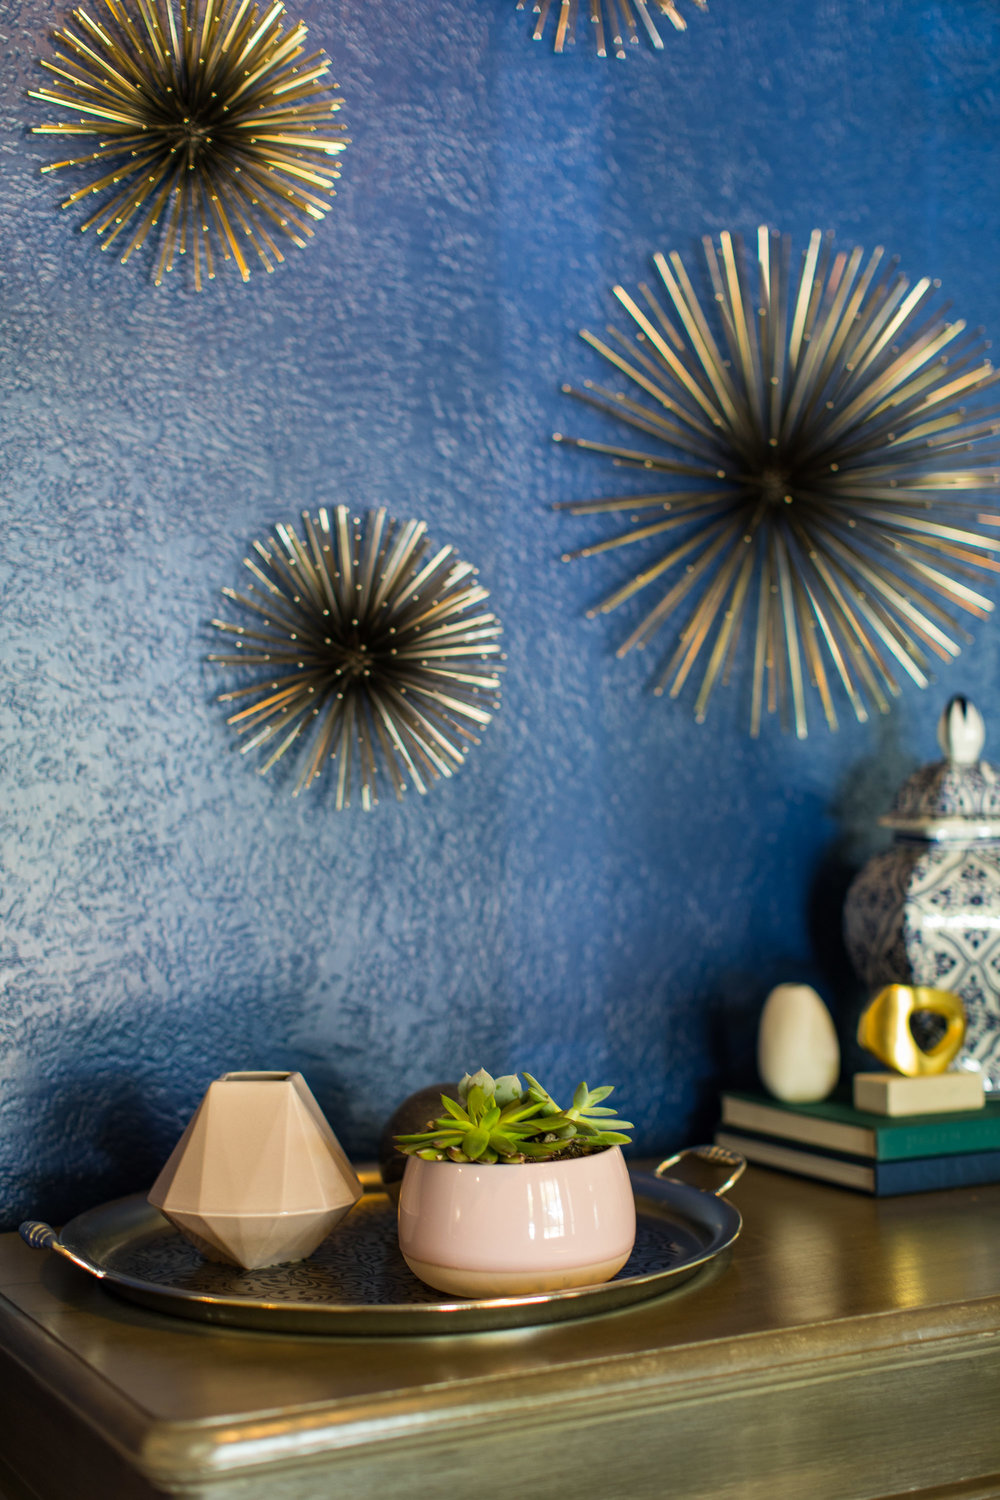 The entry way was a quick fix! I added metal urchins to the existing saturated blue walls and some fun table accessories.